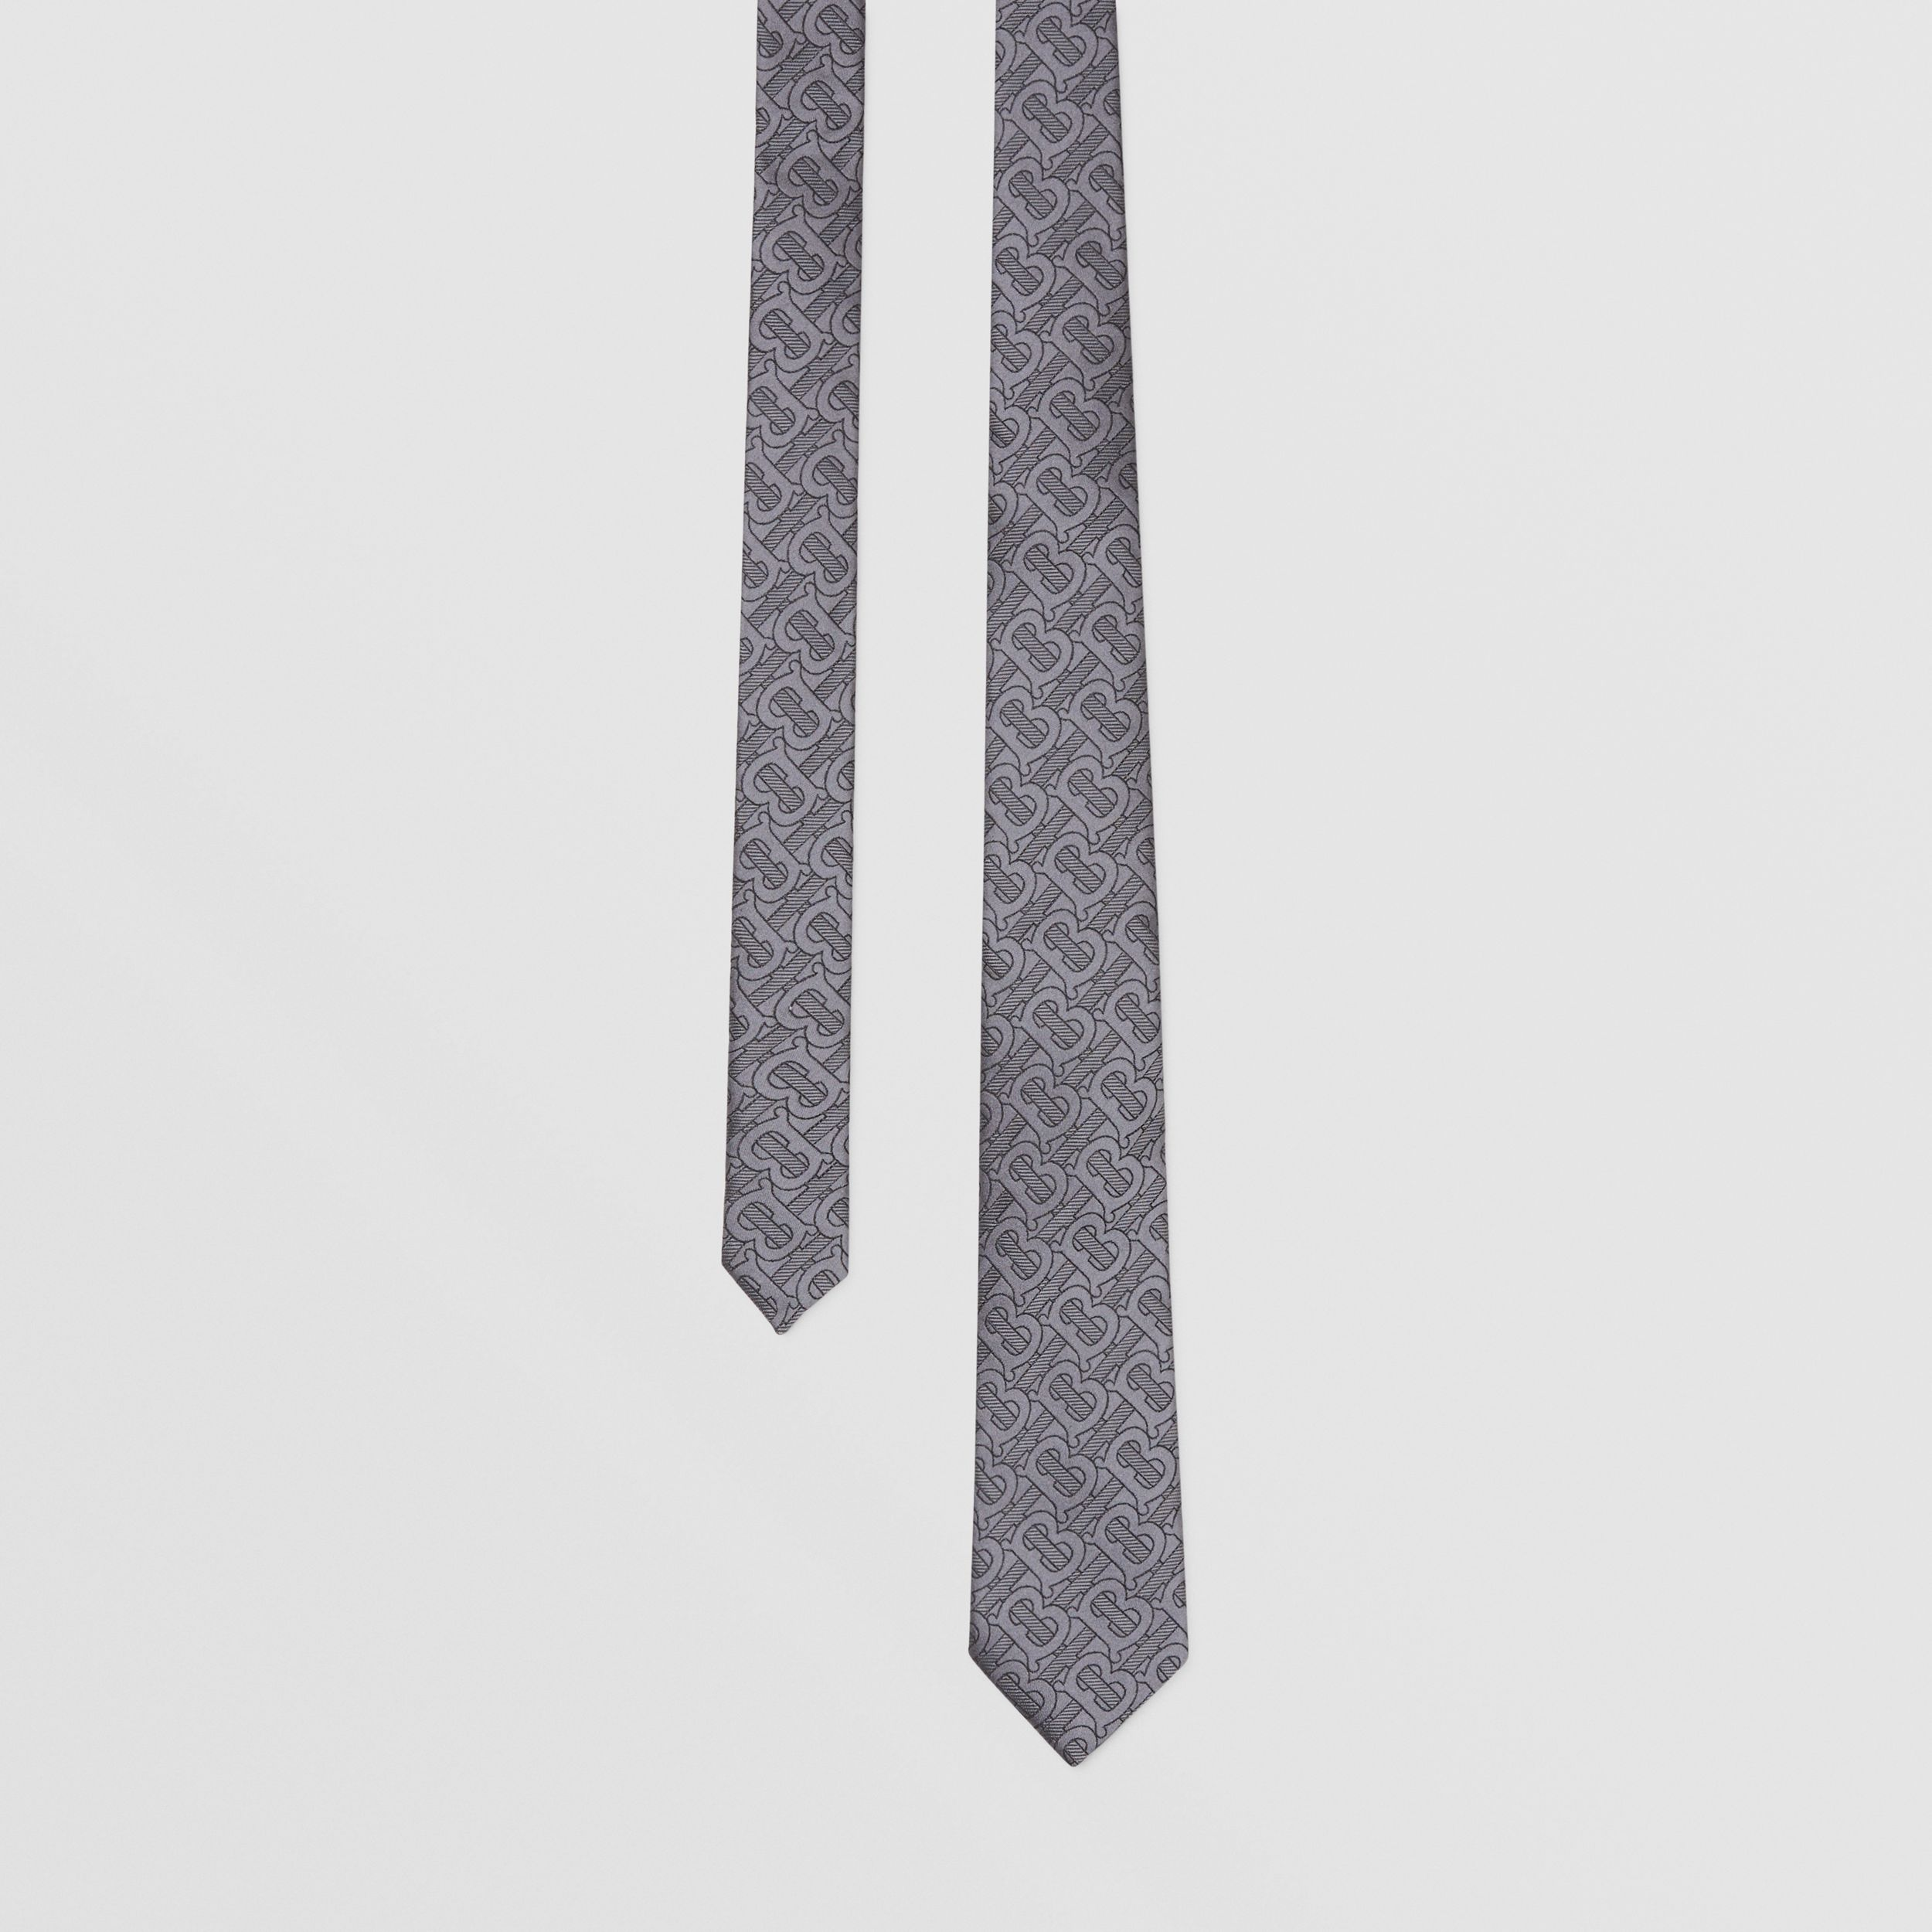 Classic Cut Monogram Silk Blend Jacquard Tie in Charcoal - Men | Burberry - 1